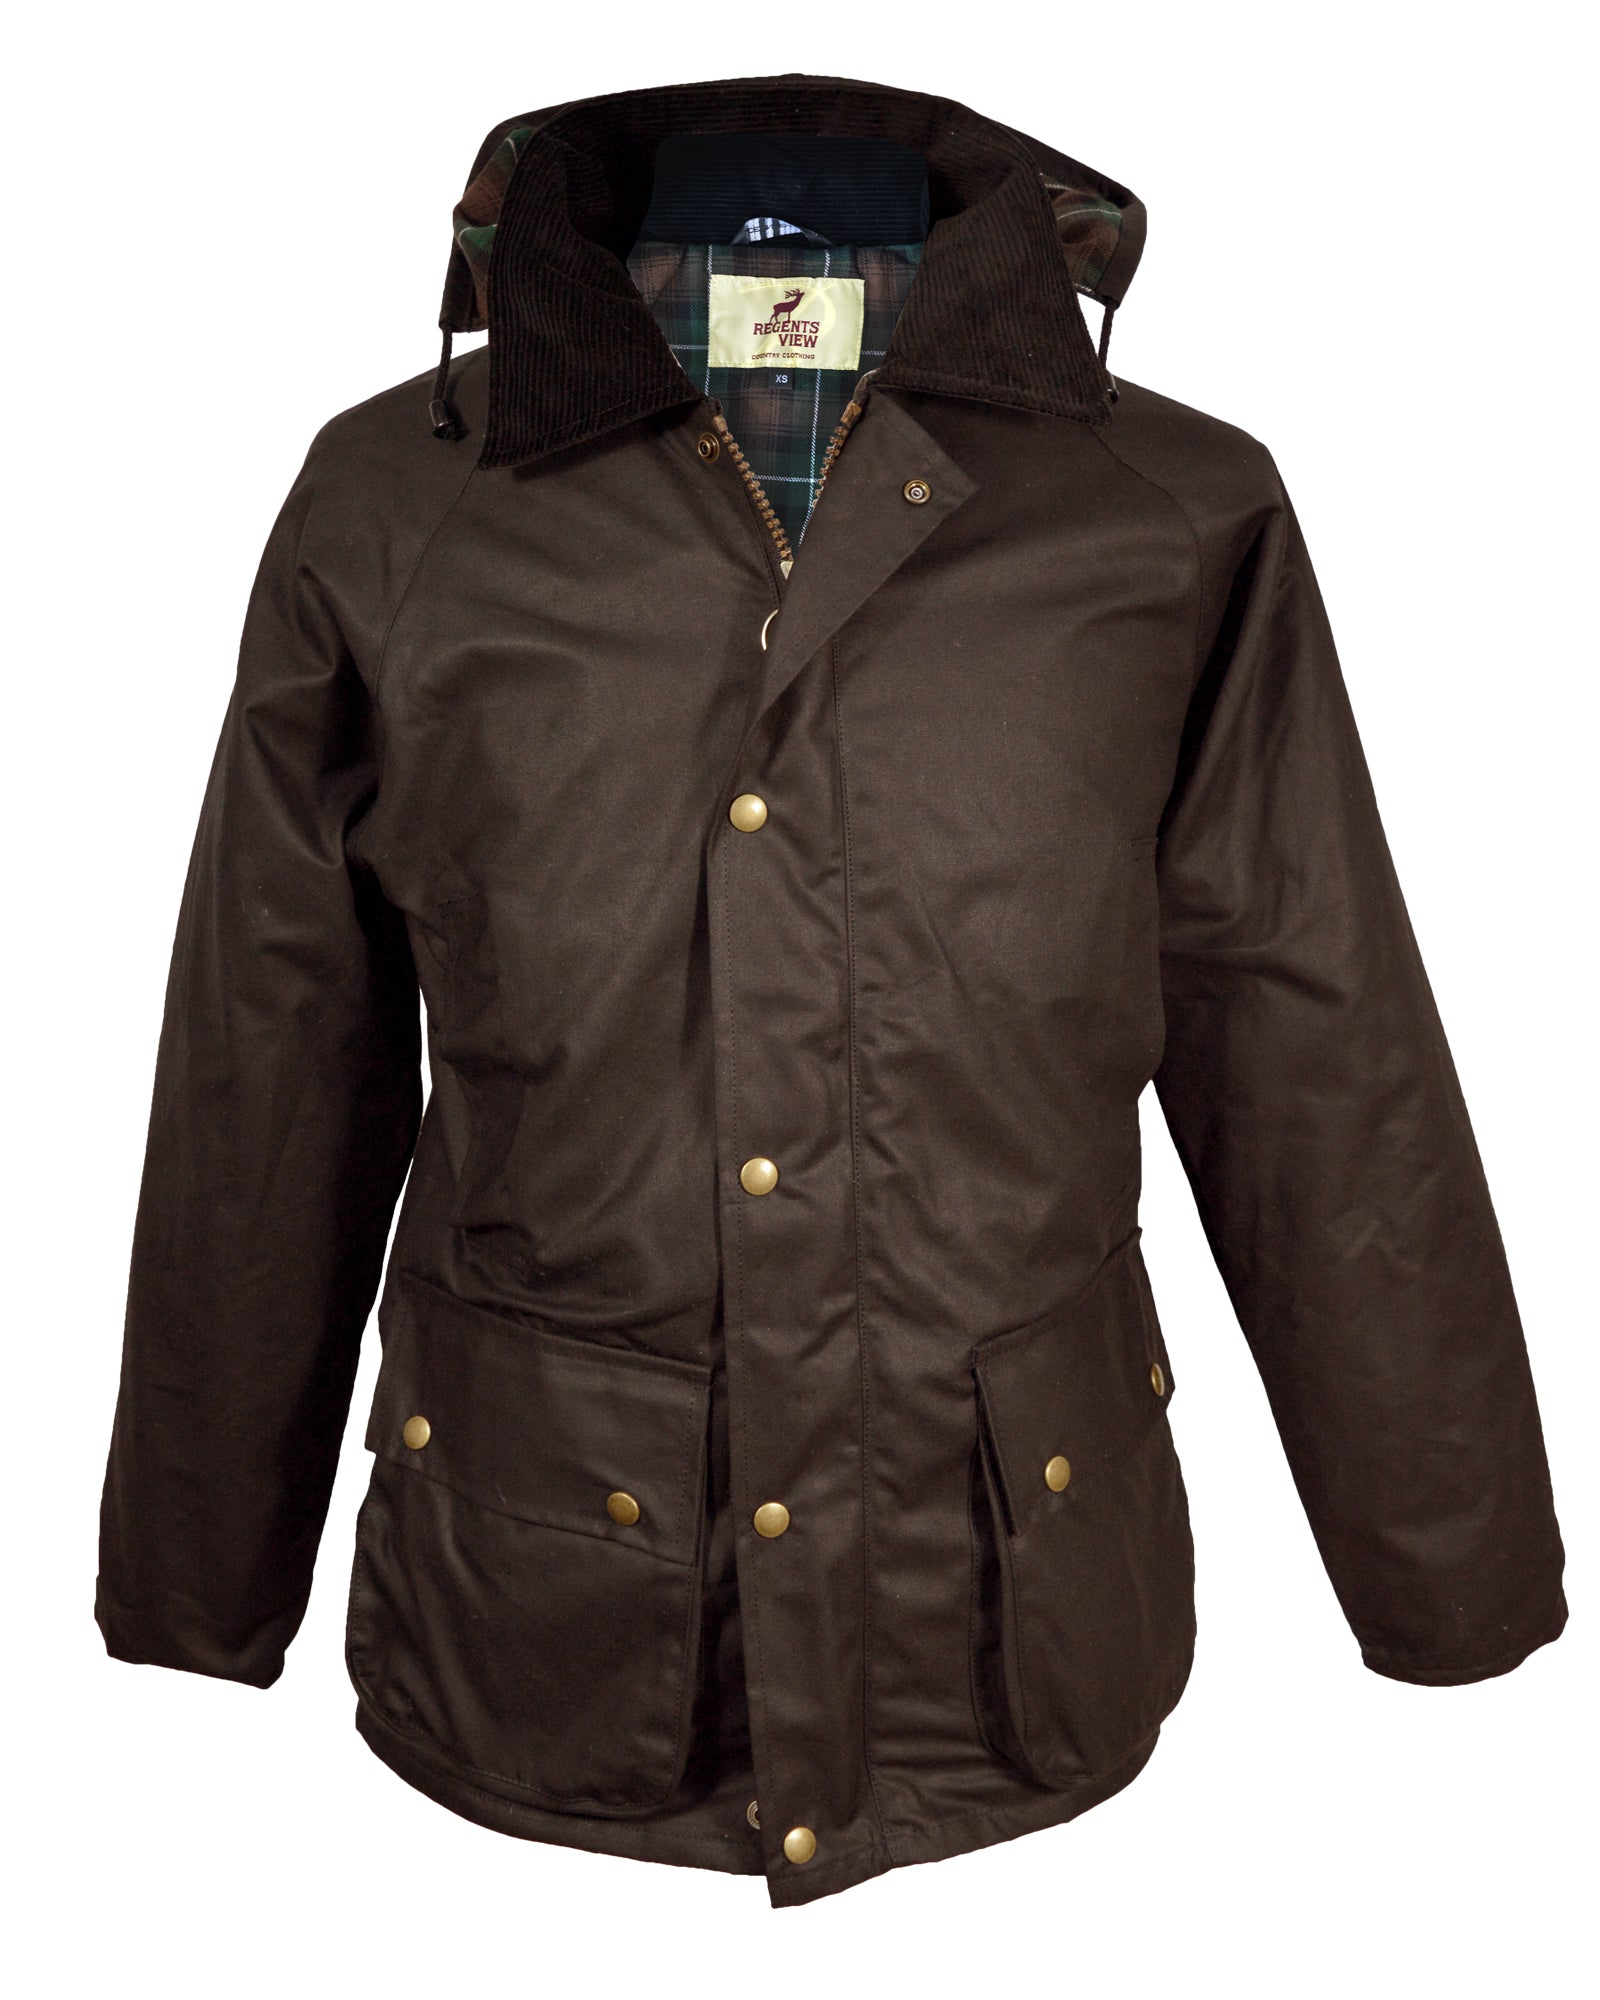 Regents View Mens Premium Hooded Wax Cotton Jacket - Brown